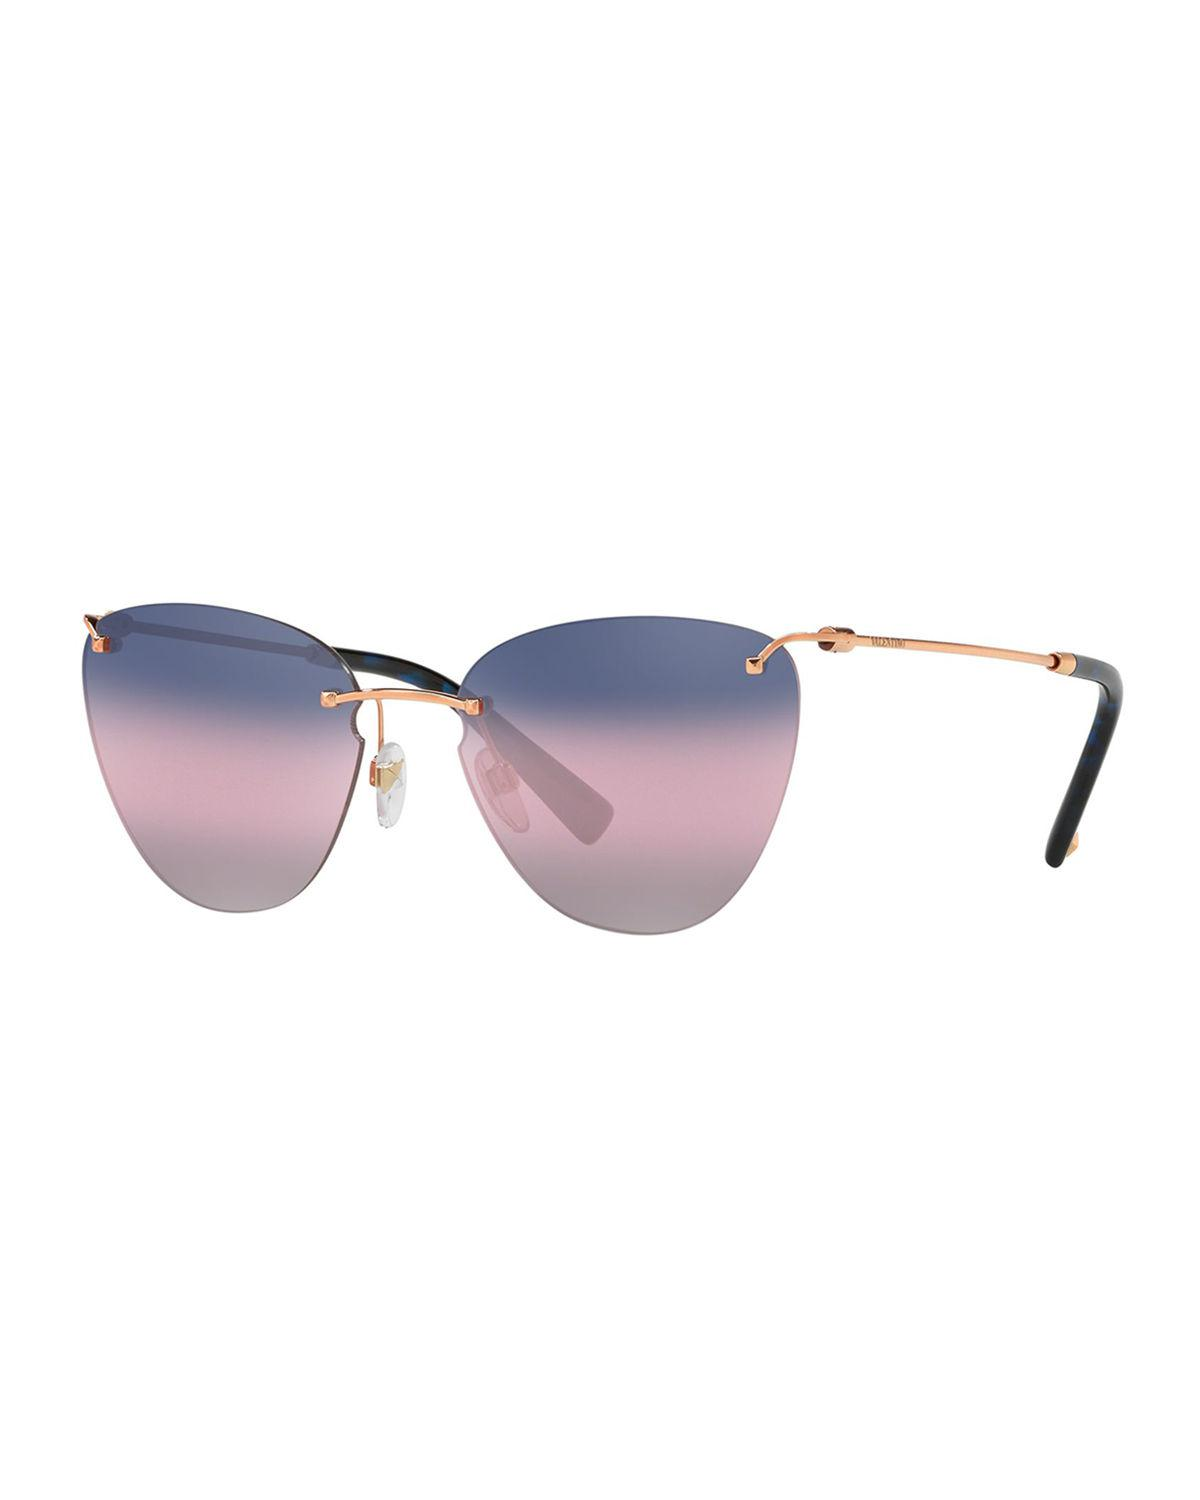 0aee70f2157 Lyst - Valentino Va2022 Women s Cat s Eye Sunglasses